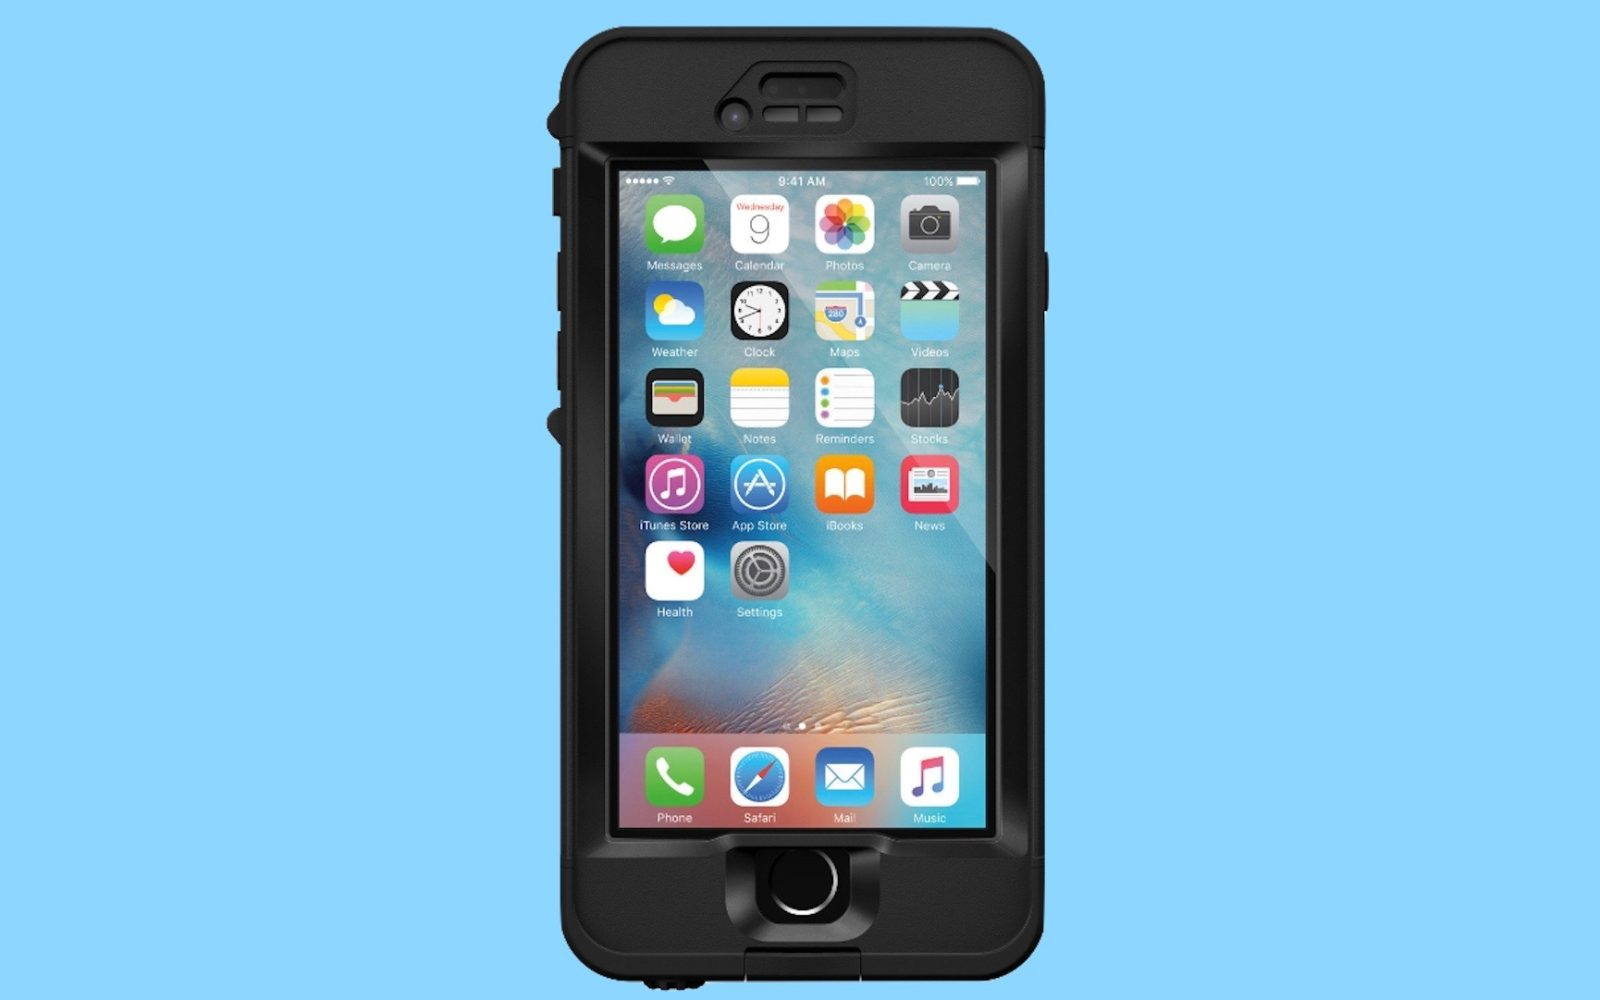 super popular 38b0a 7c119 Lifeproof NUUD waterproof case fit for iPhone 6s & 6s Plus now ...